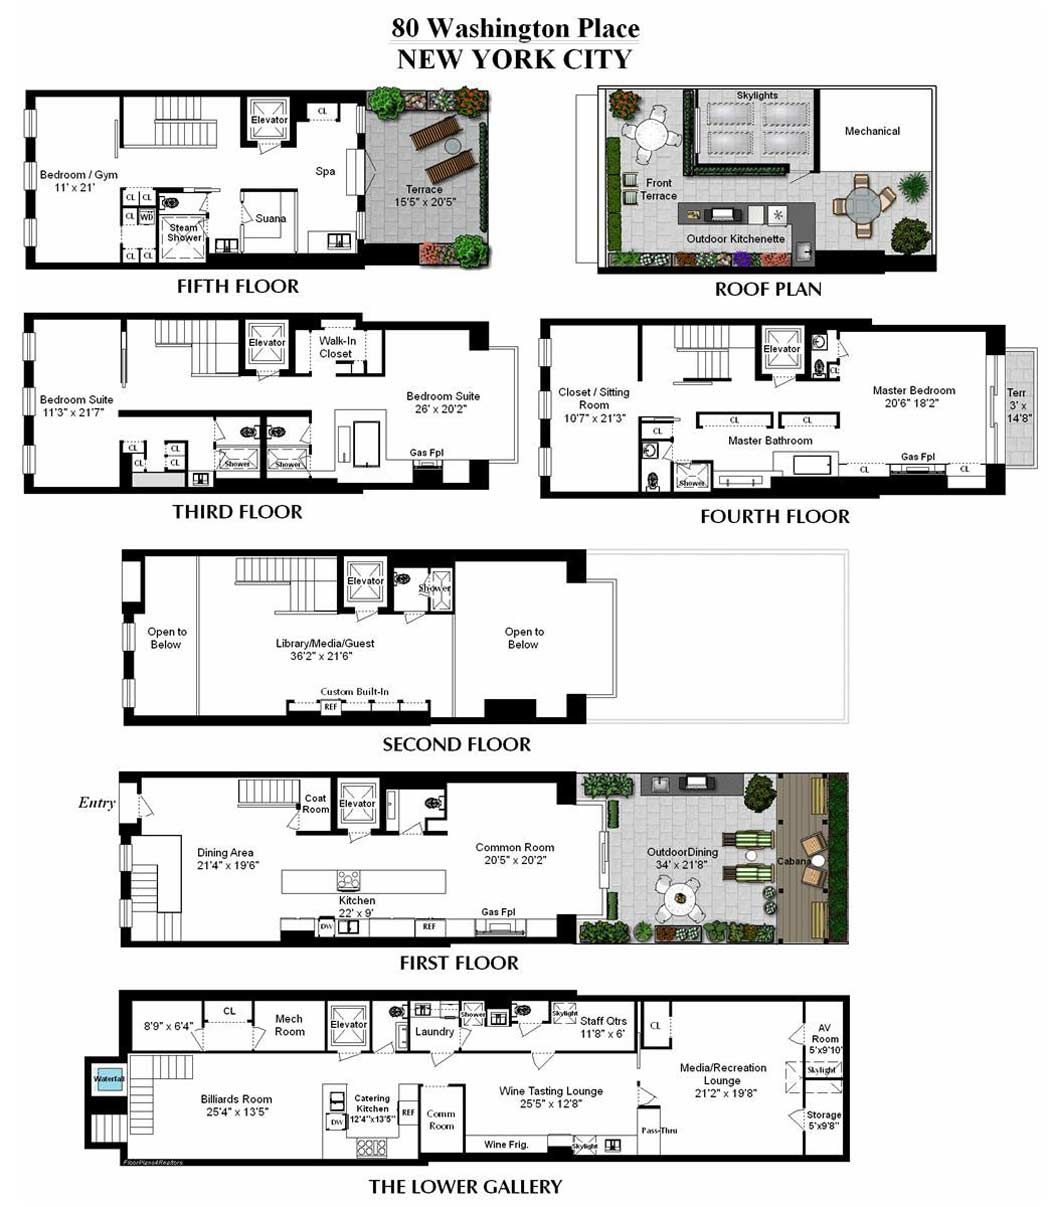 Floor Plans Converted Townhouse In Greenwich Village In